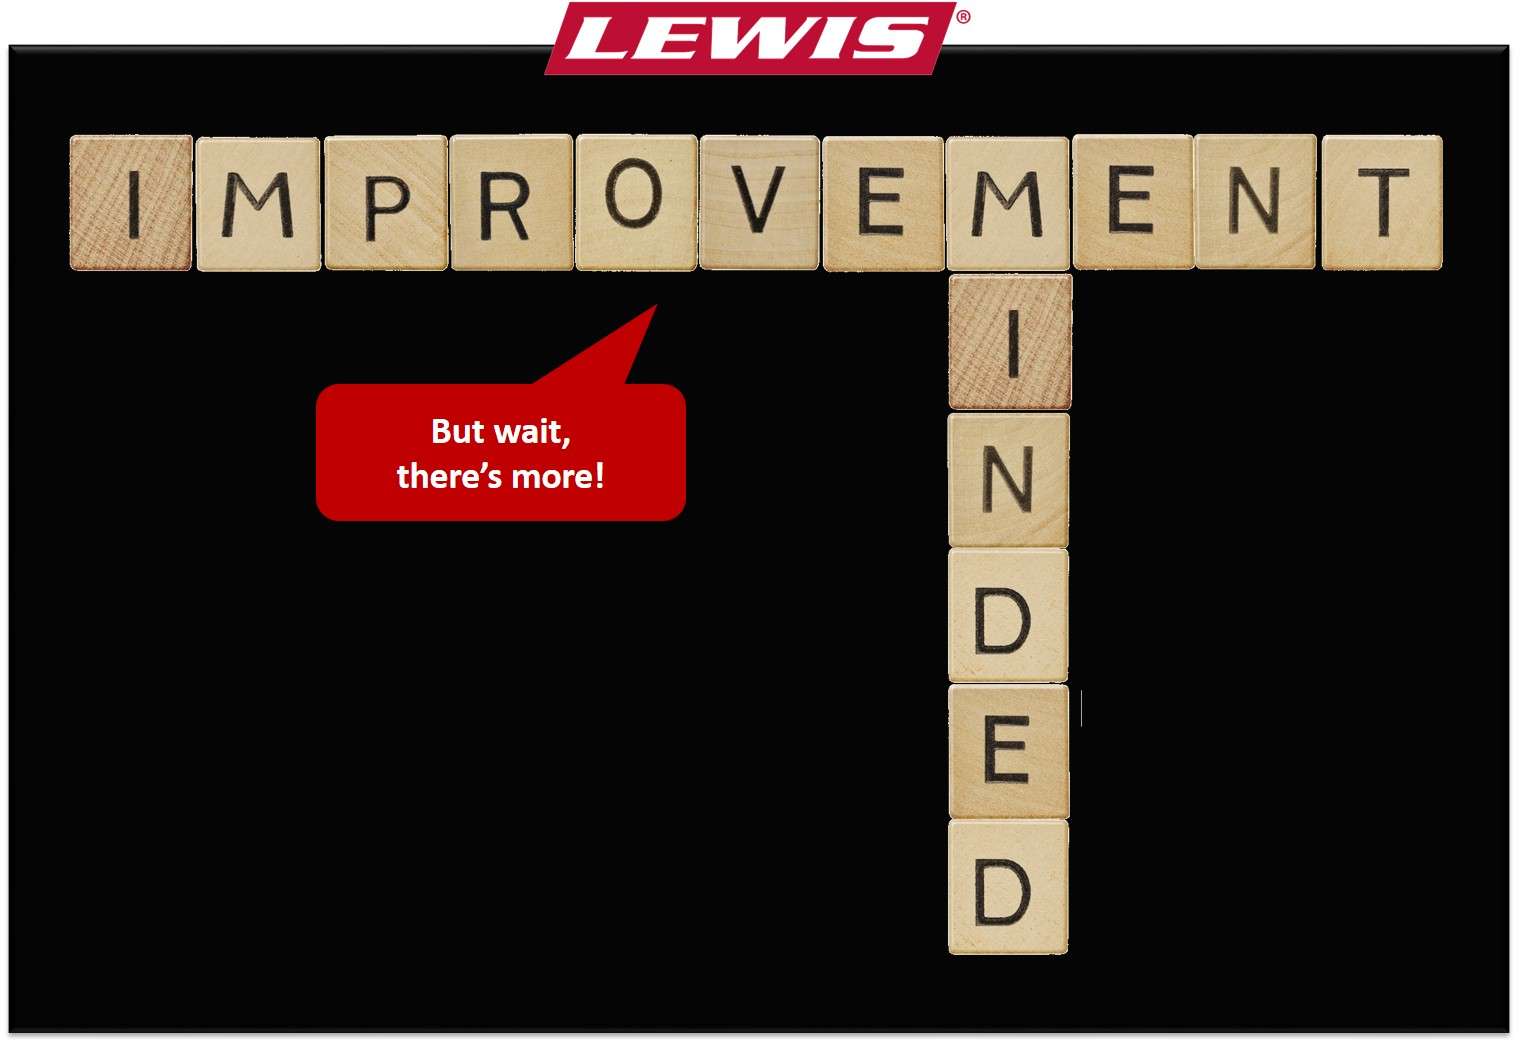 Improvement Minded Operating Principle